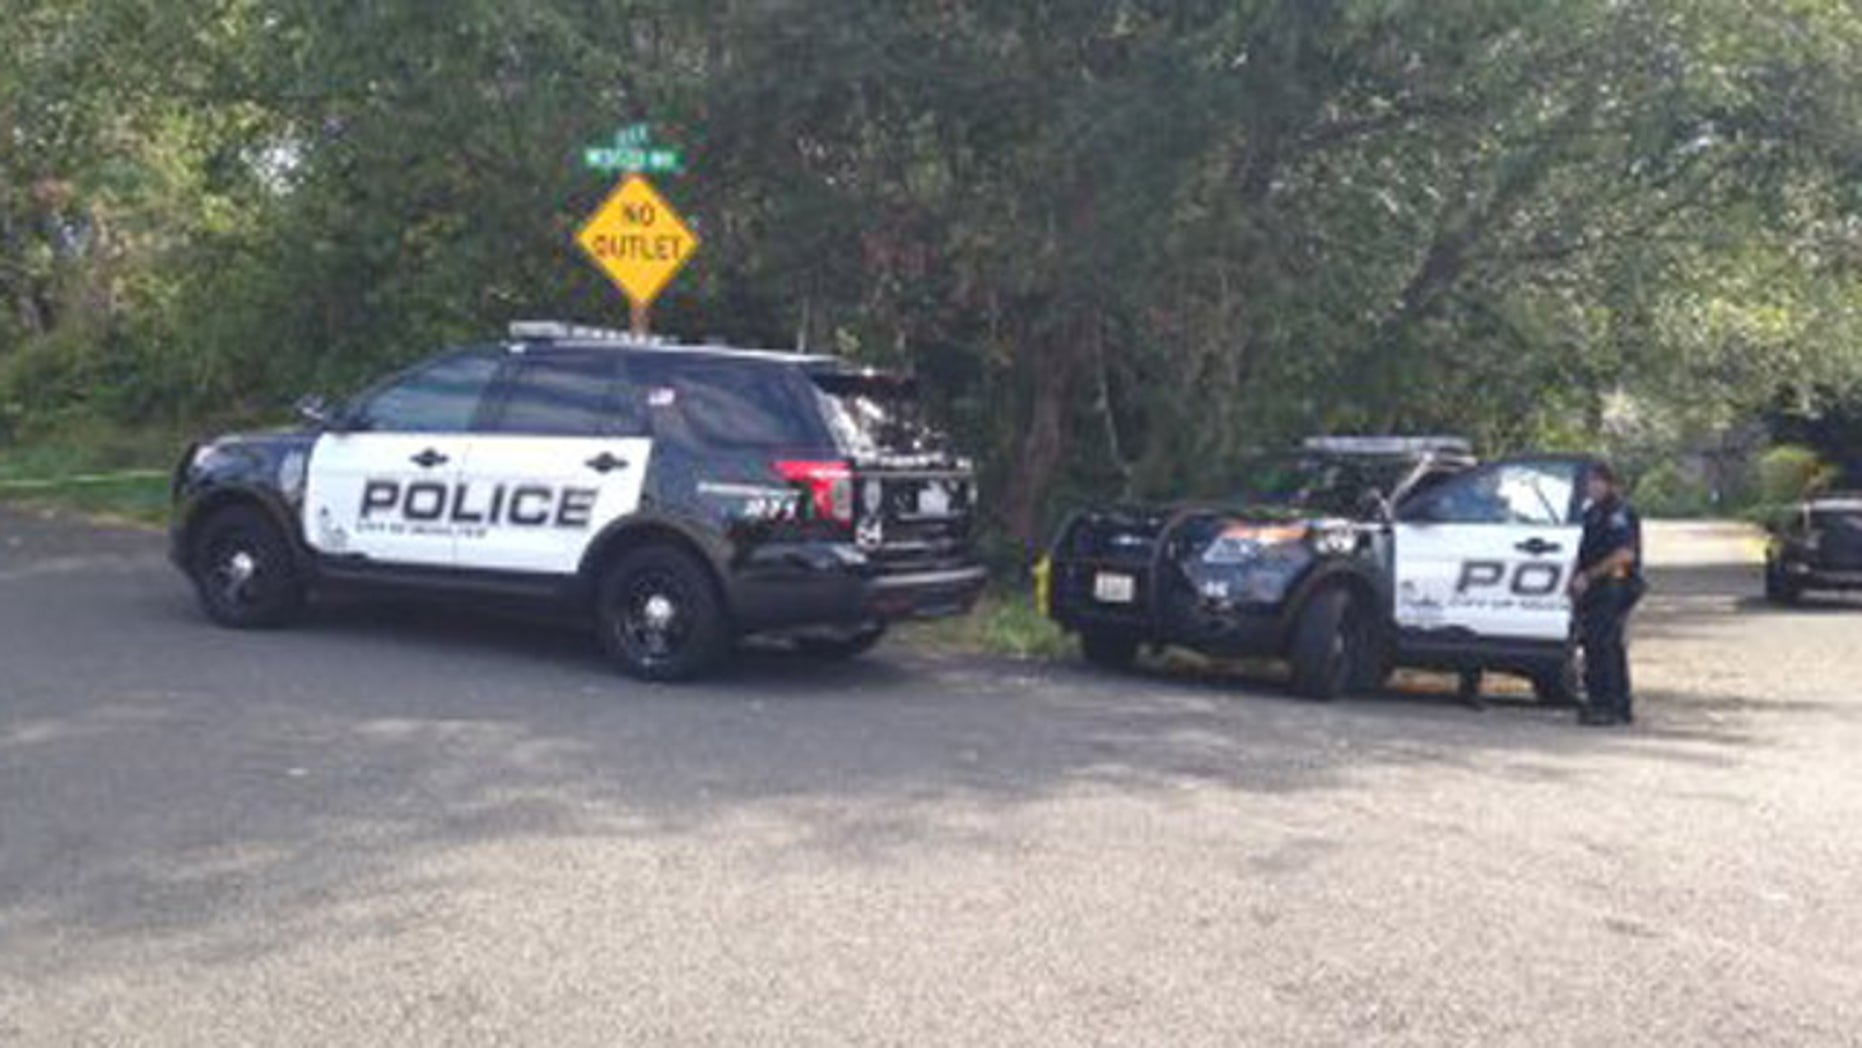 July 30, 2016: Police cars gather at the scene of a deadly shooting in Mukilteo, Wash.